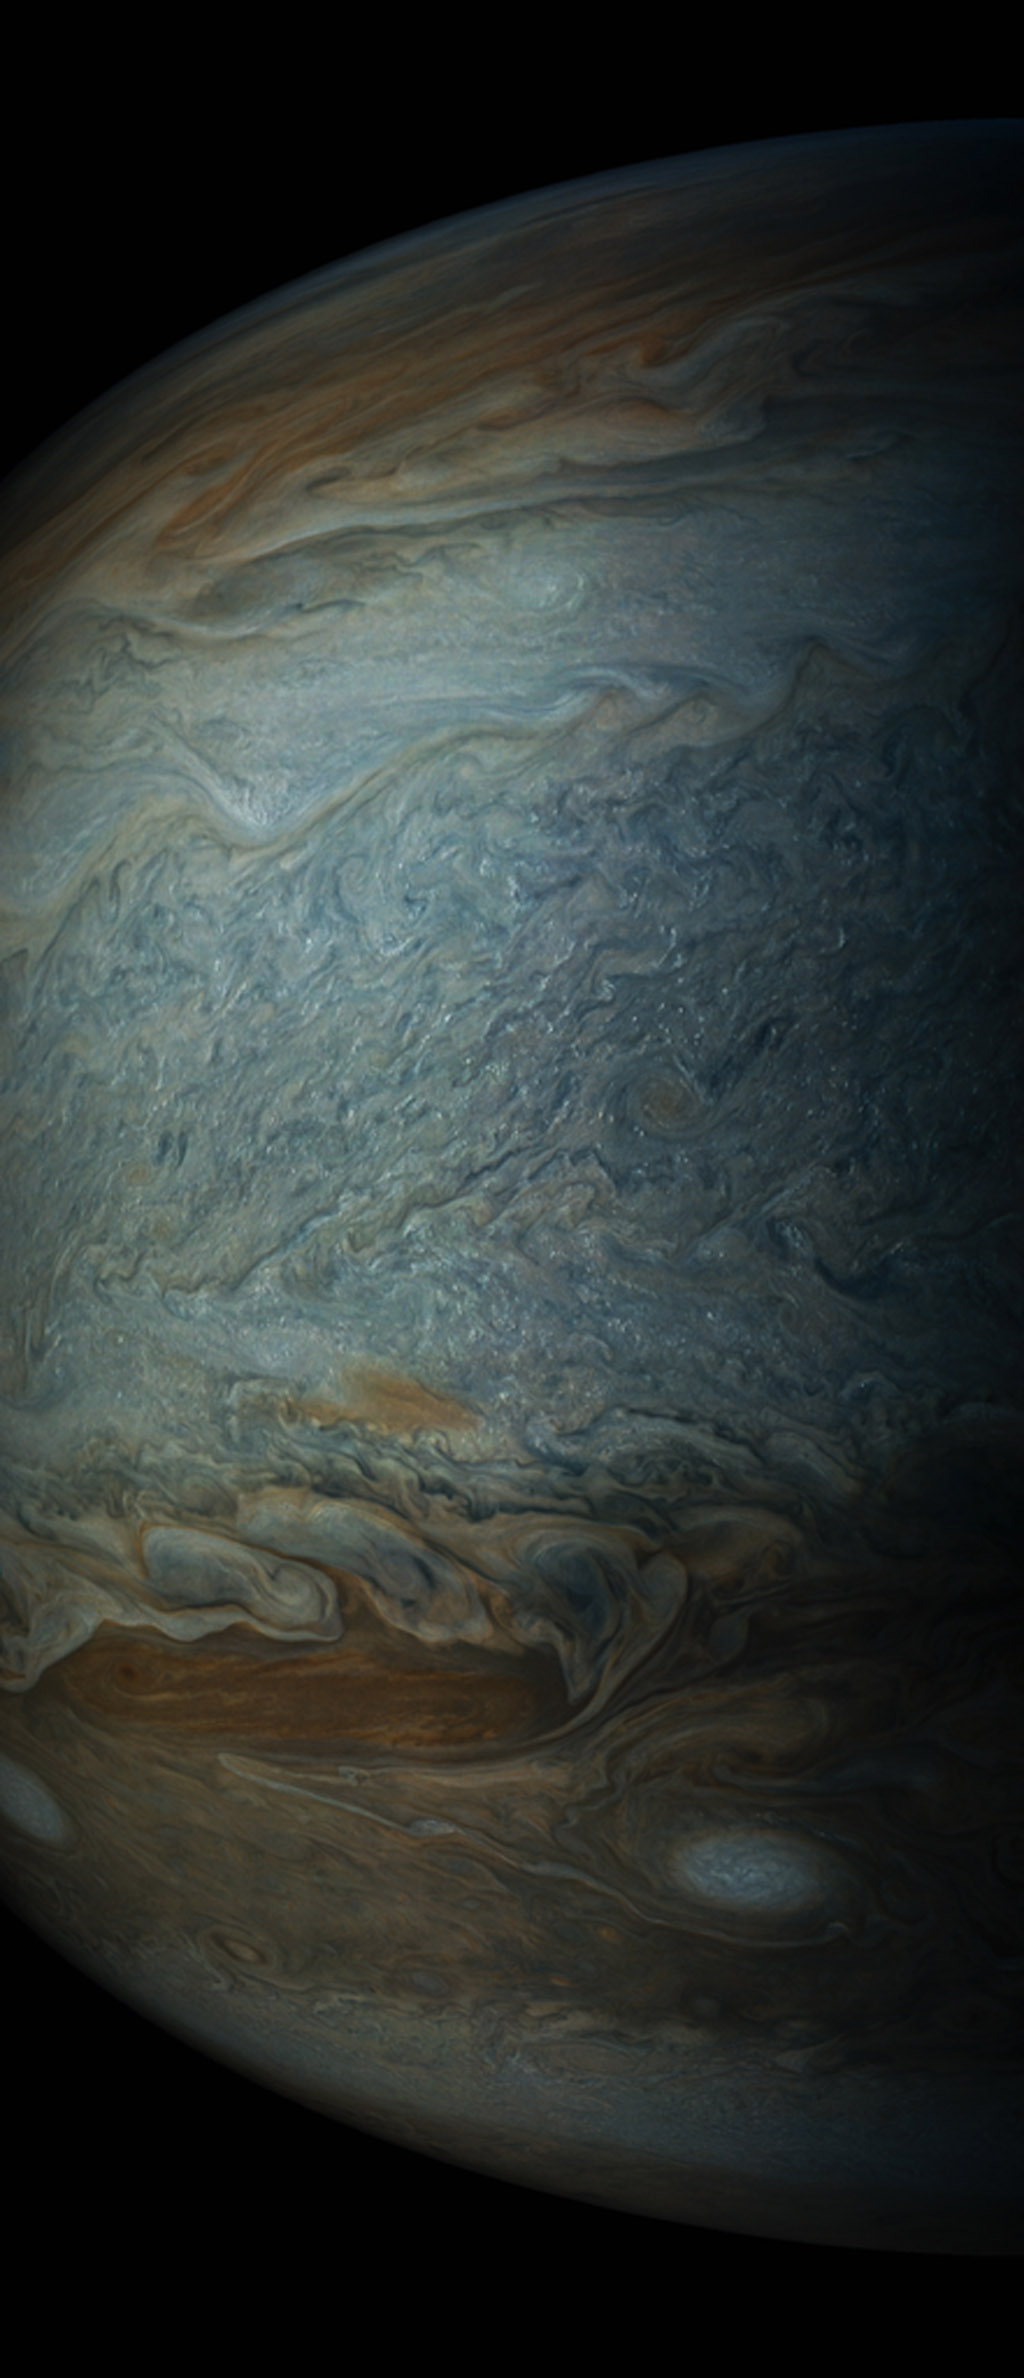 Small bright clouds dot Jupiter's entire south tropical zone in this image acquired by JunoCam on NASA's Juno spacecraft on May 19, 2017.